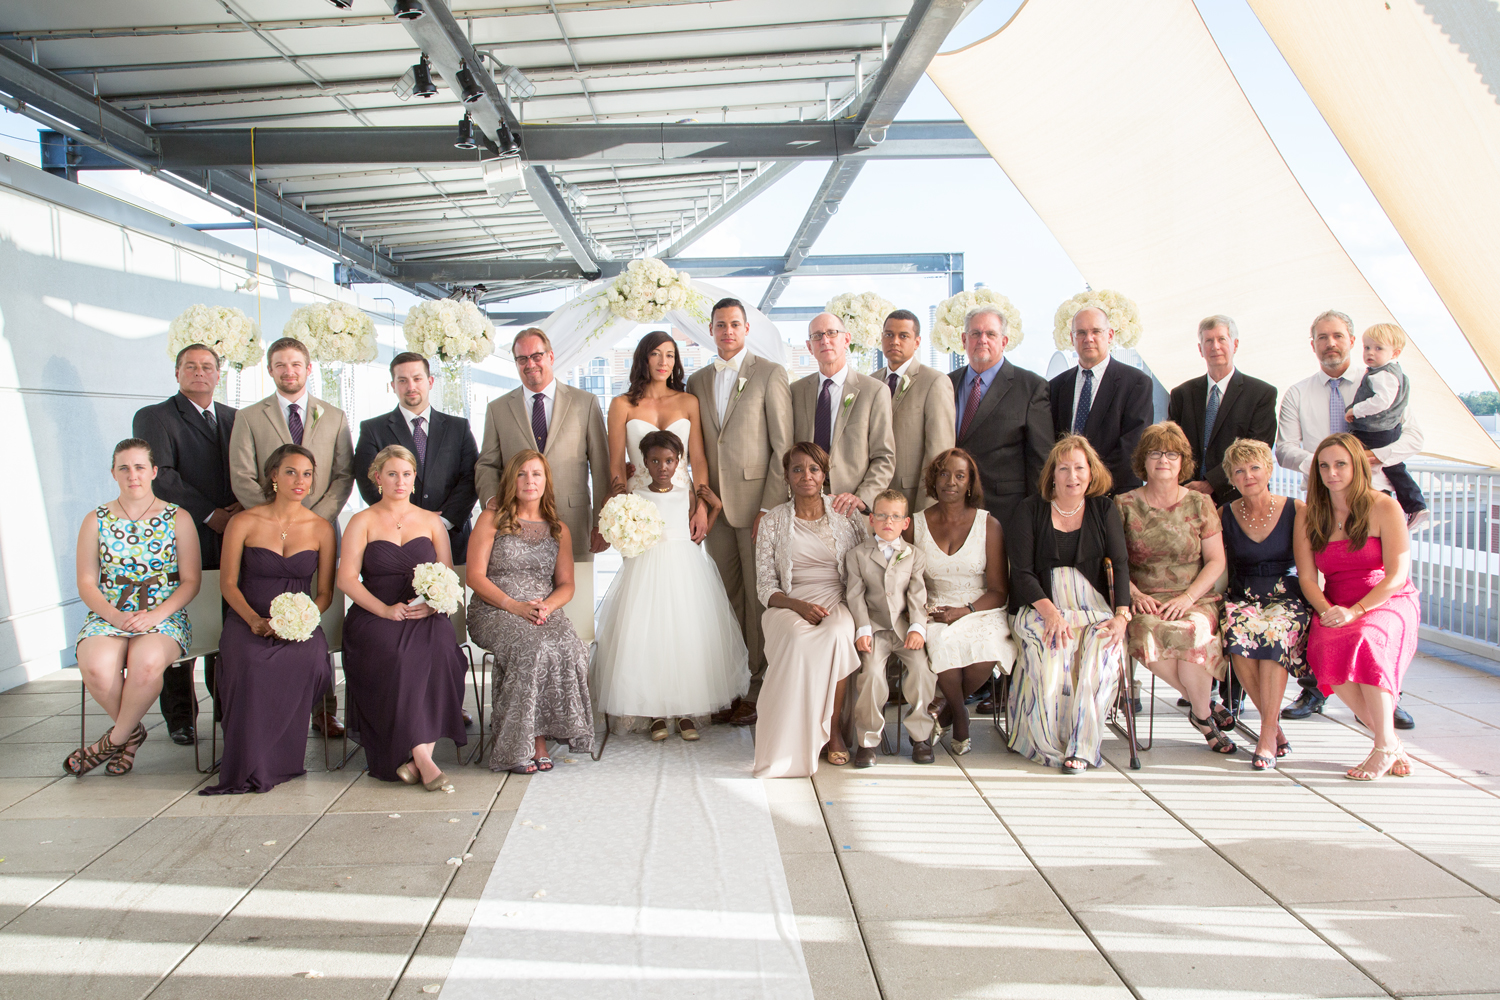 Rostedt and Farester's Wedding